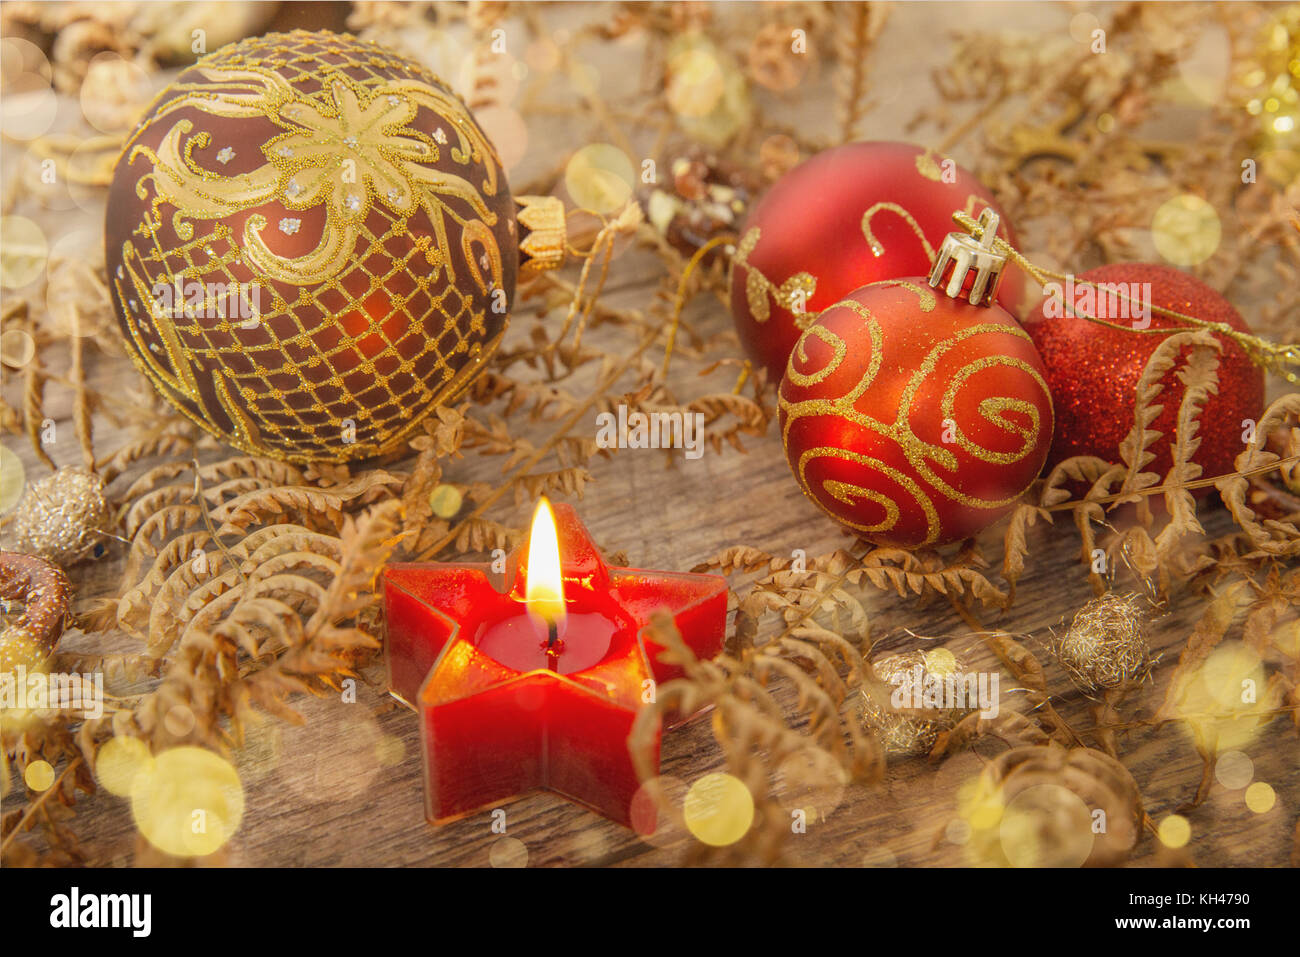 Christmas and New Year border Design Stock Photo  165436012   Alamy Christmas and New Year border Design